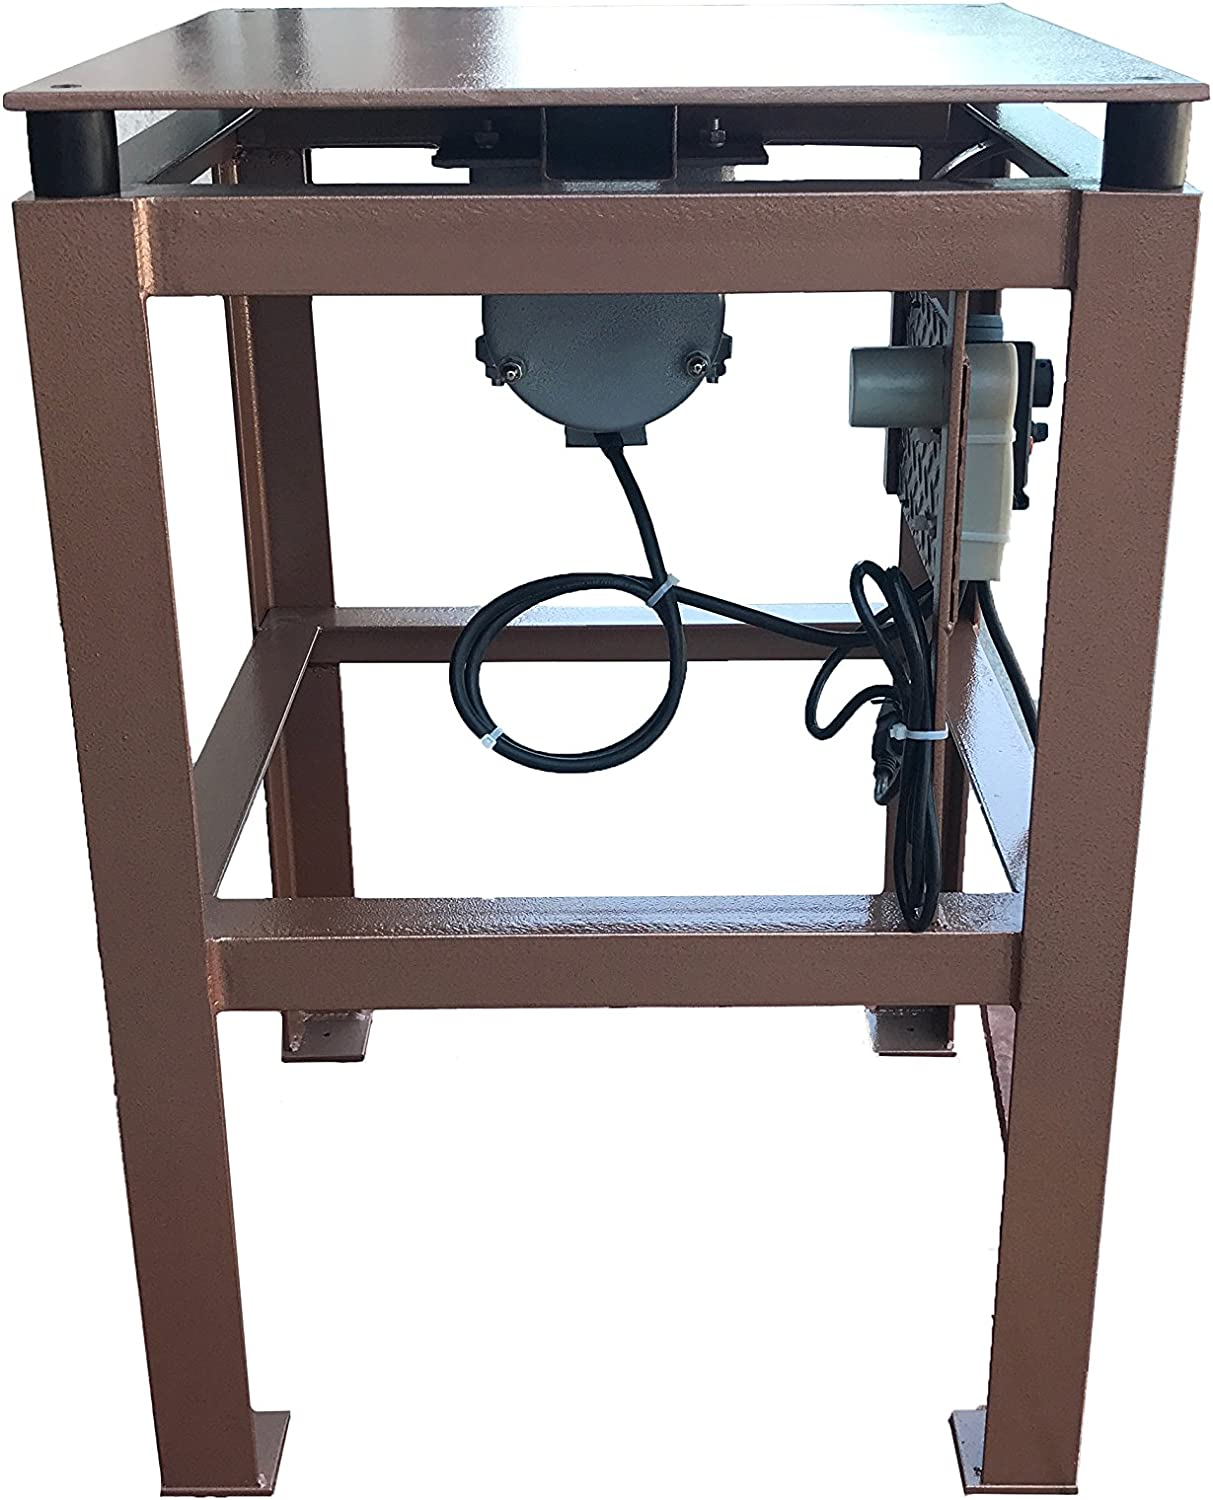 Made in USA GlobMarble Concrete Vibrating Table CVT 24